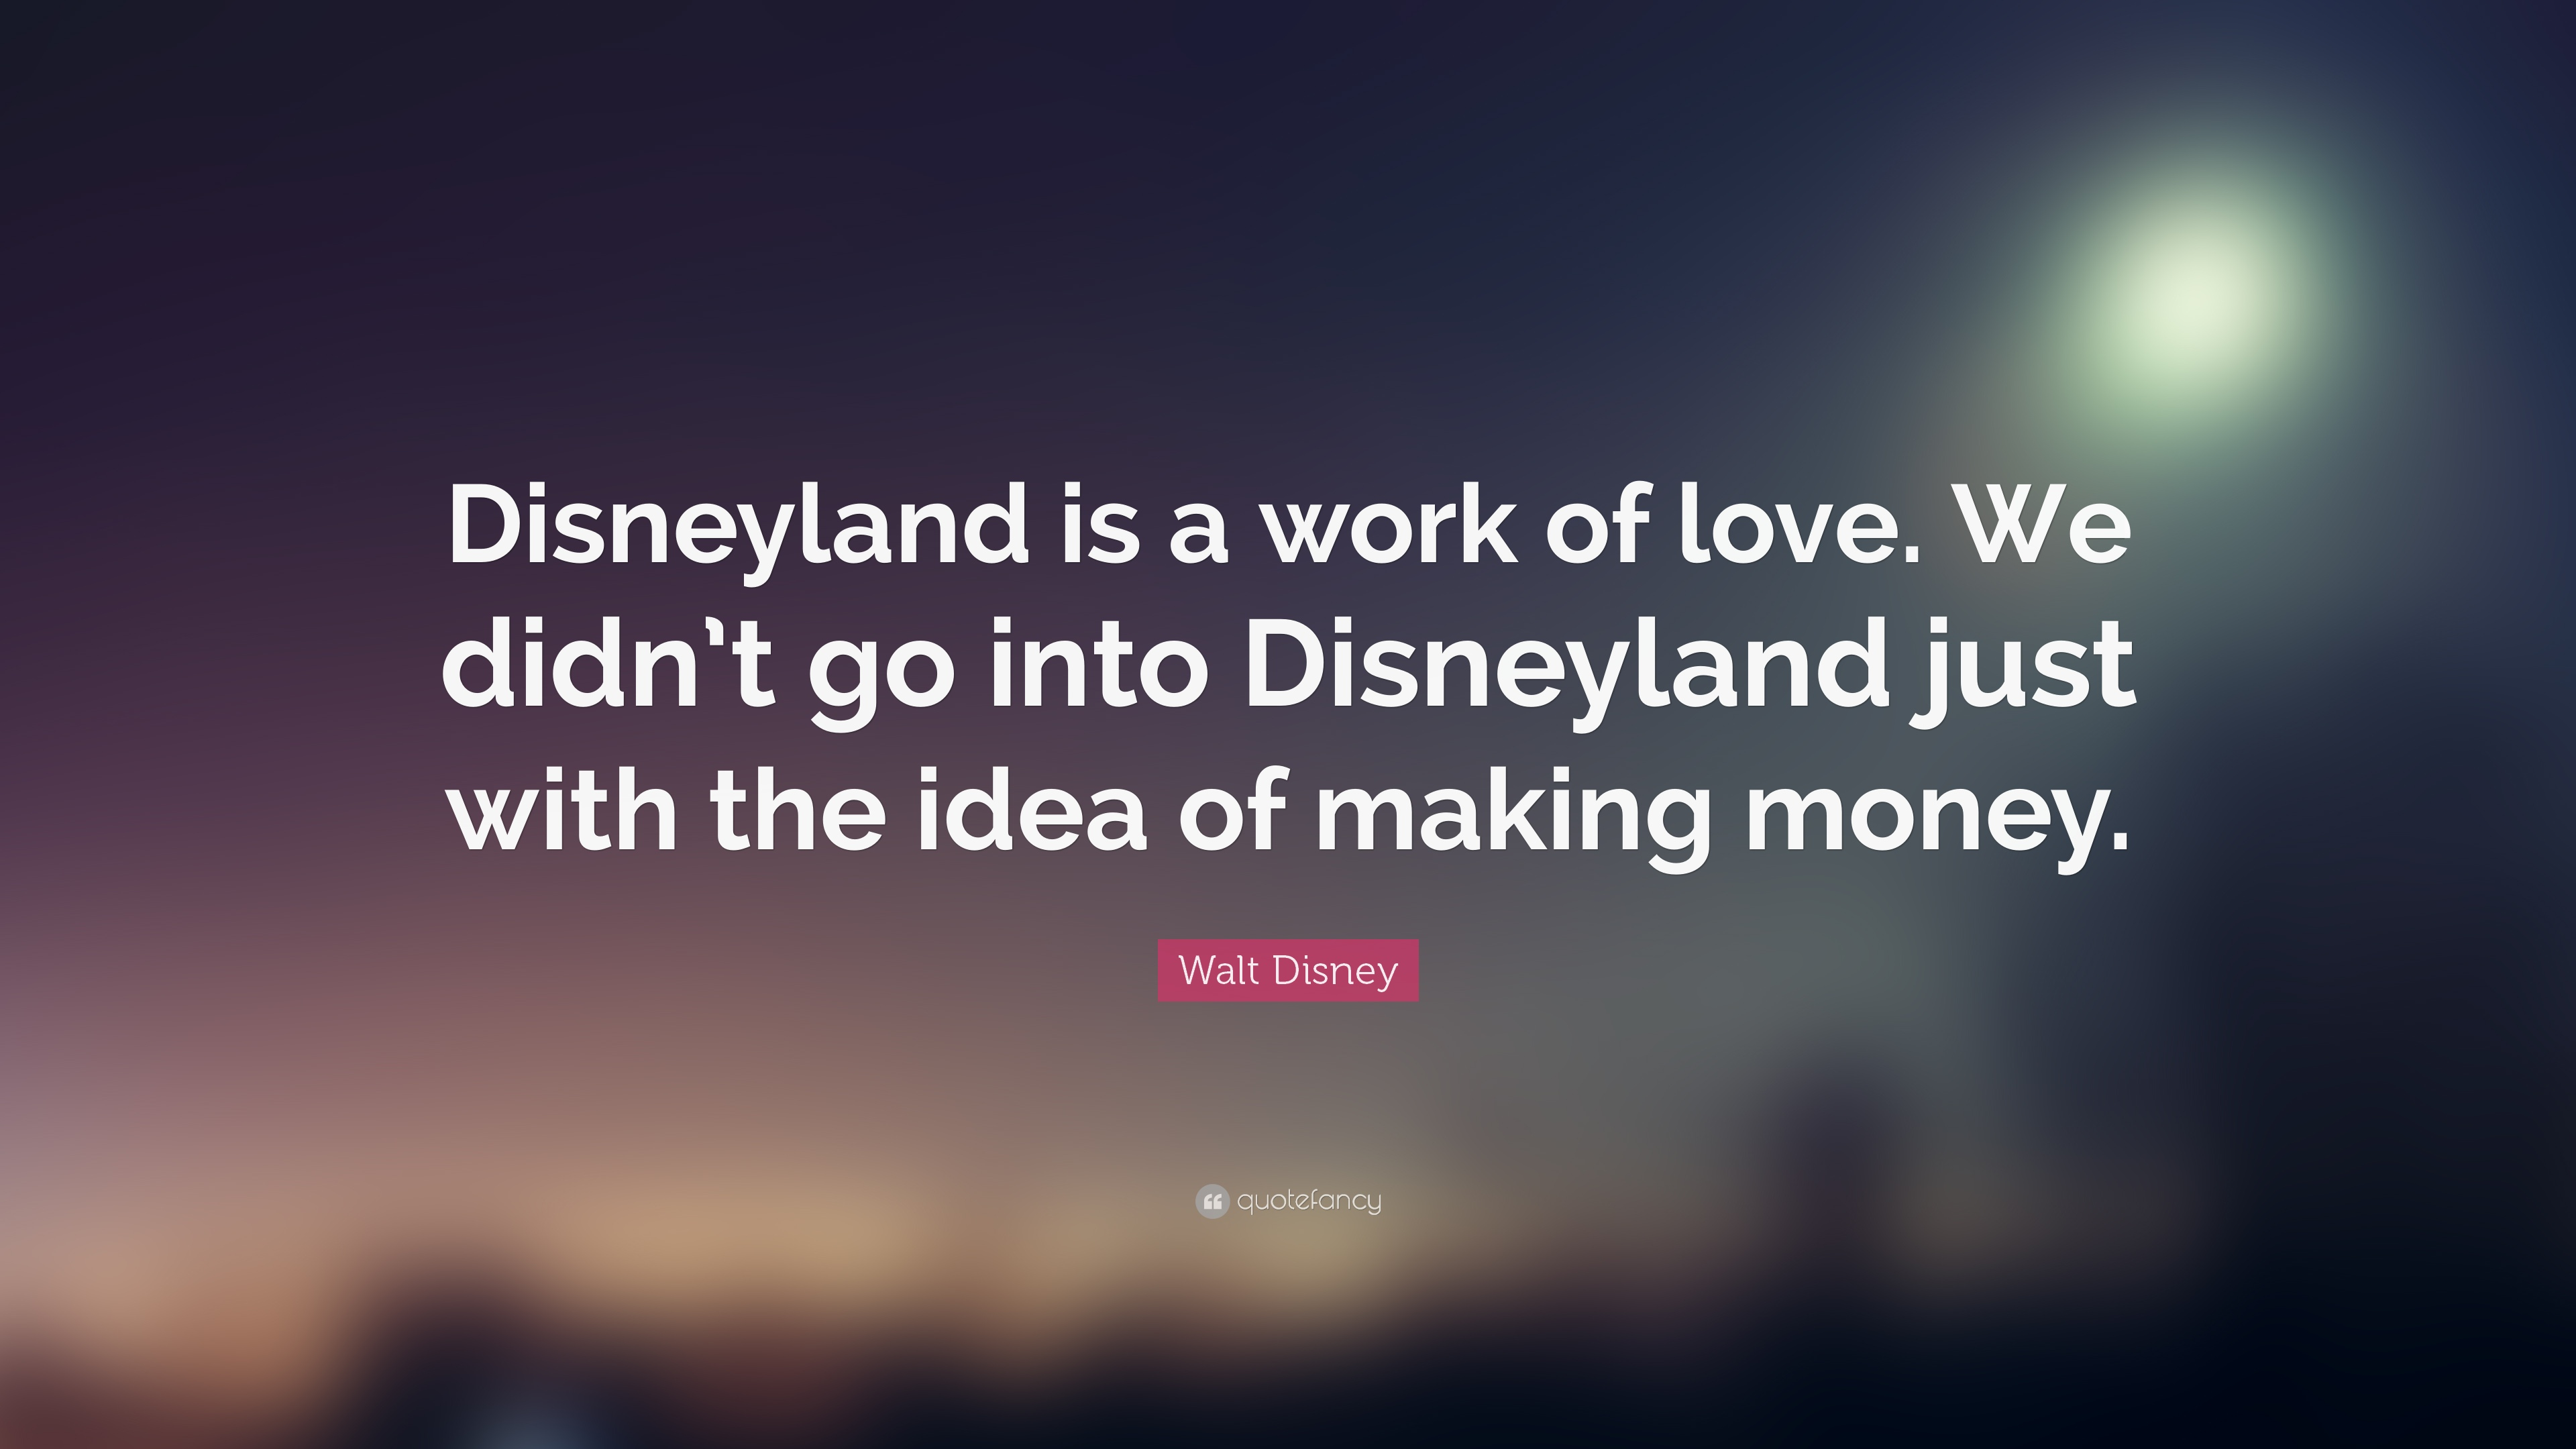 walt disney quote disneyland is a work of love we didnt